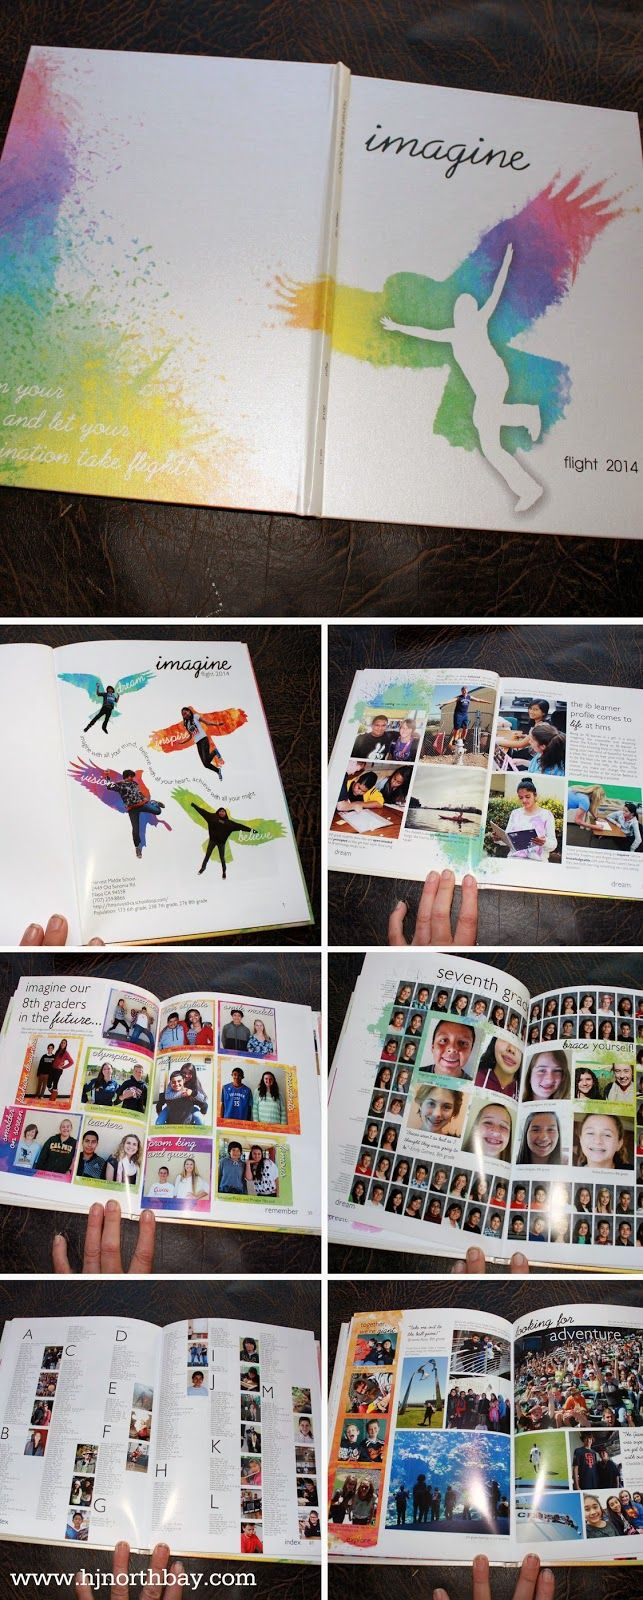 imagine yearbook theme with watercolor splashes